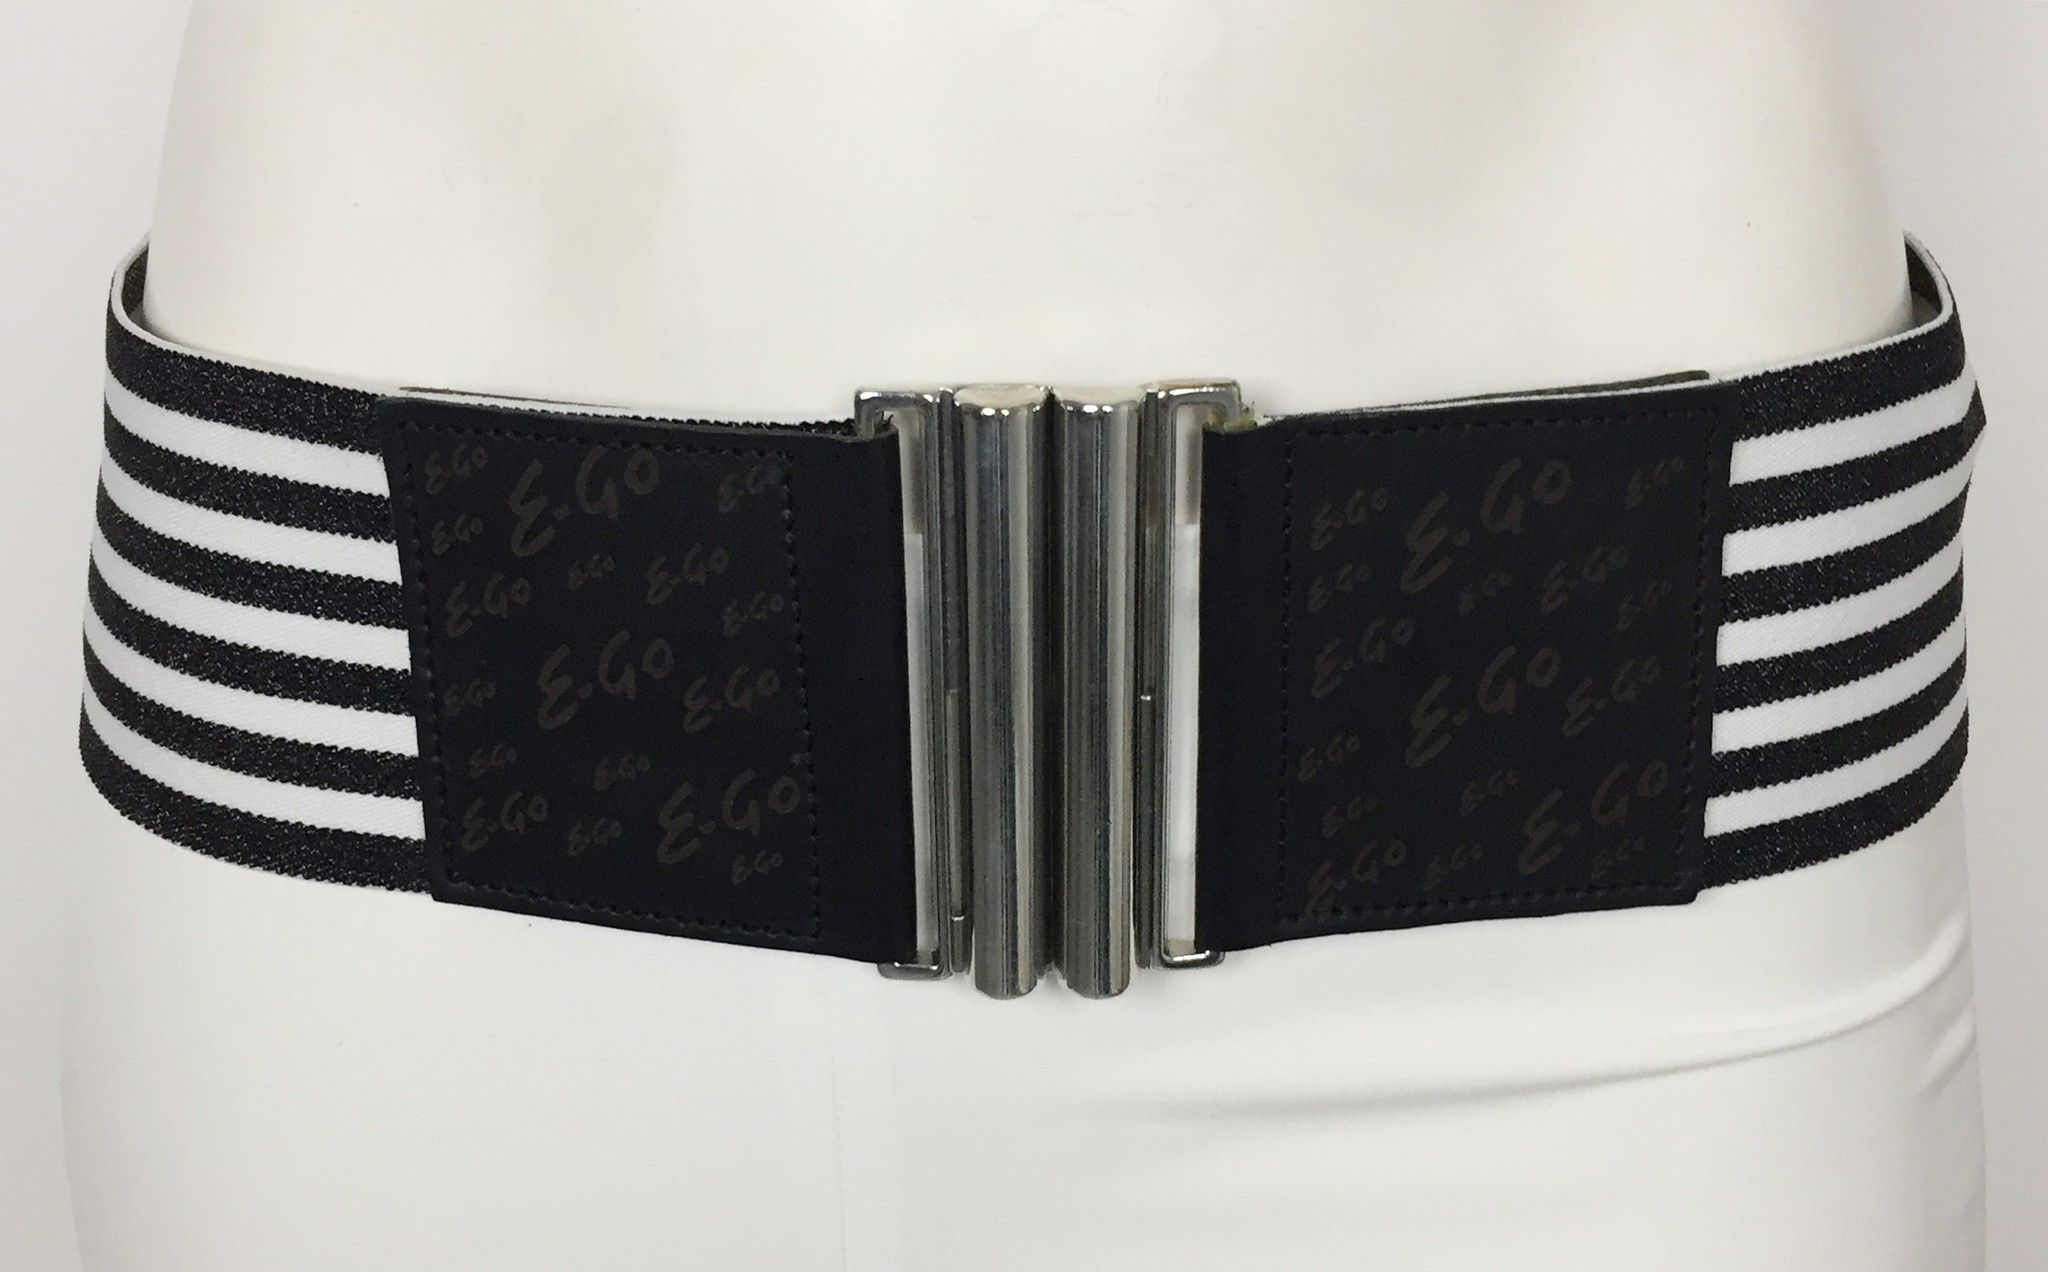 E-GO Two-tone Striped Elastic Belt Cod.9462490